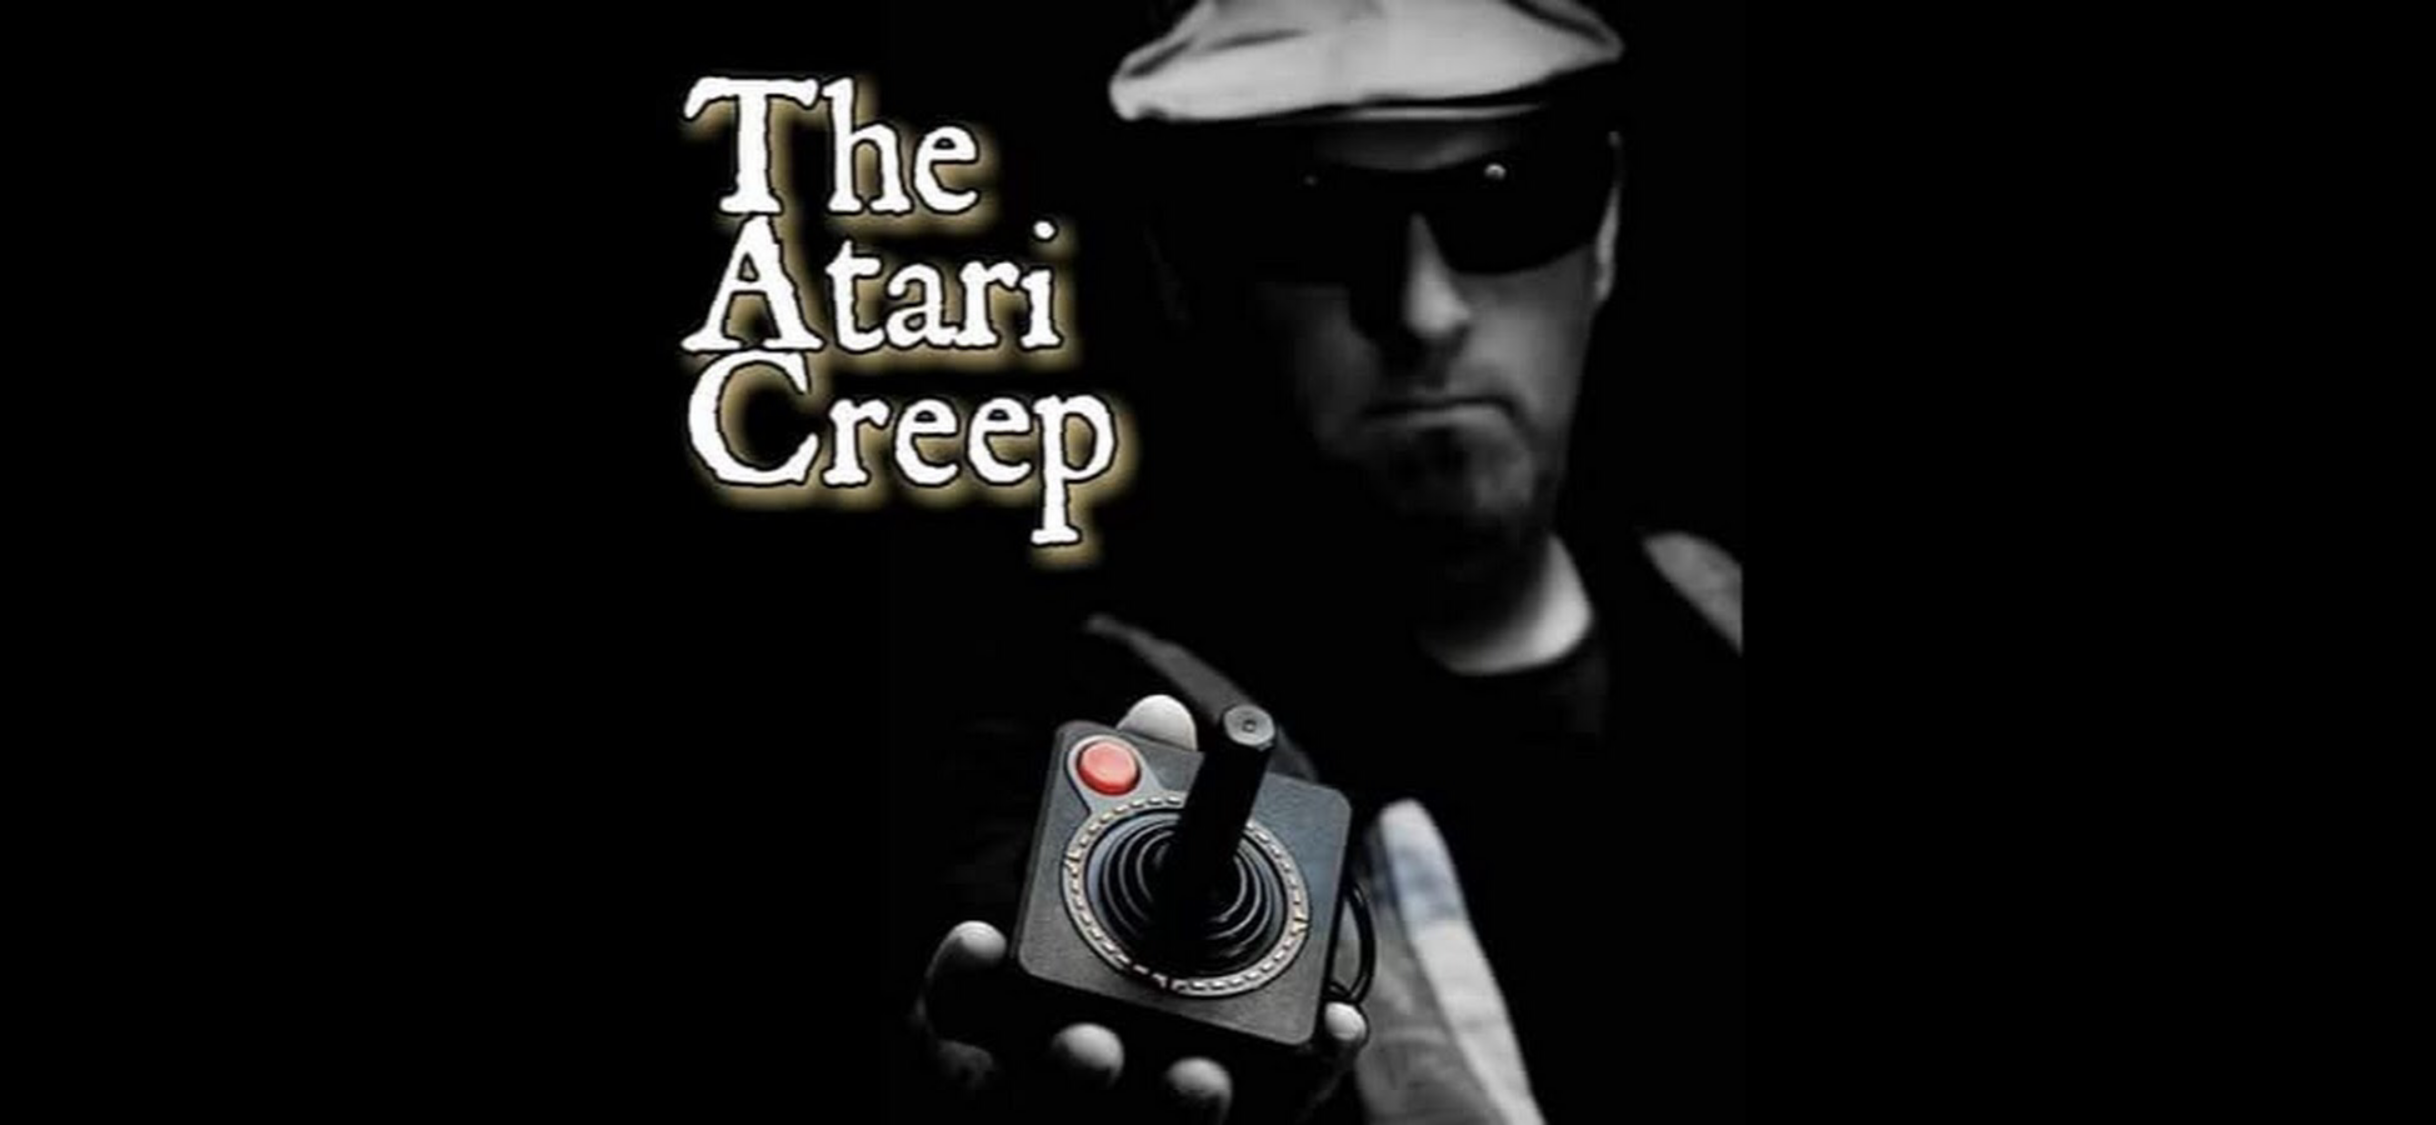 Atari Creep Sunday Night Live Stream